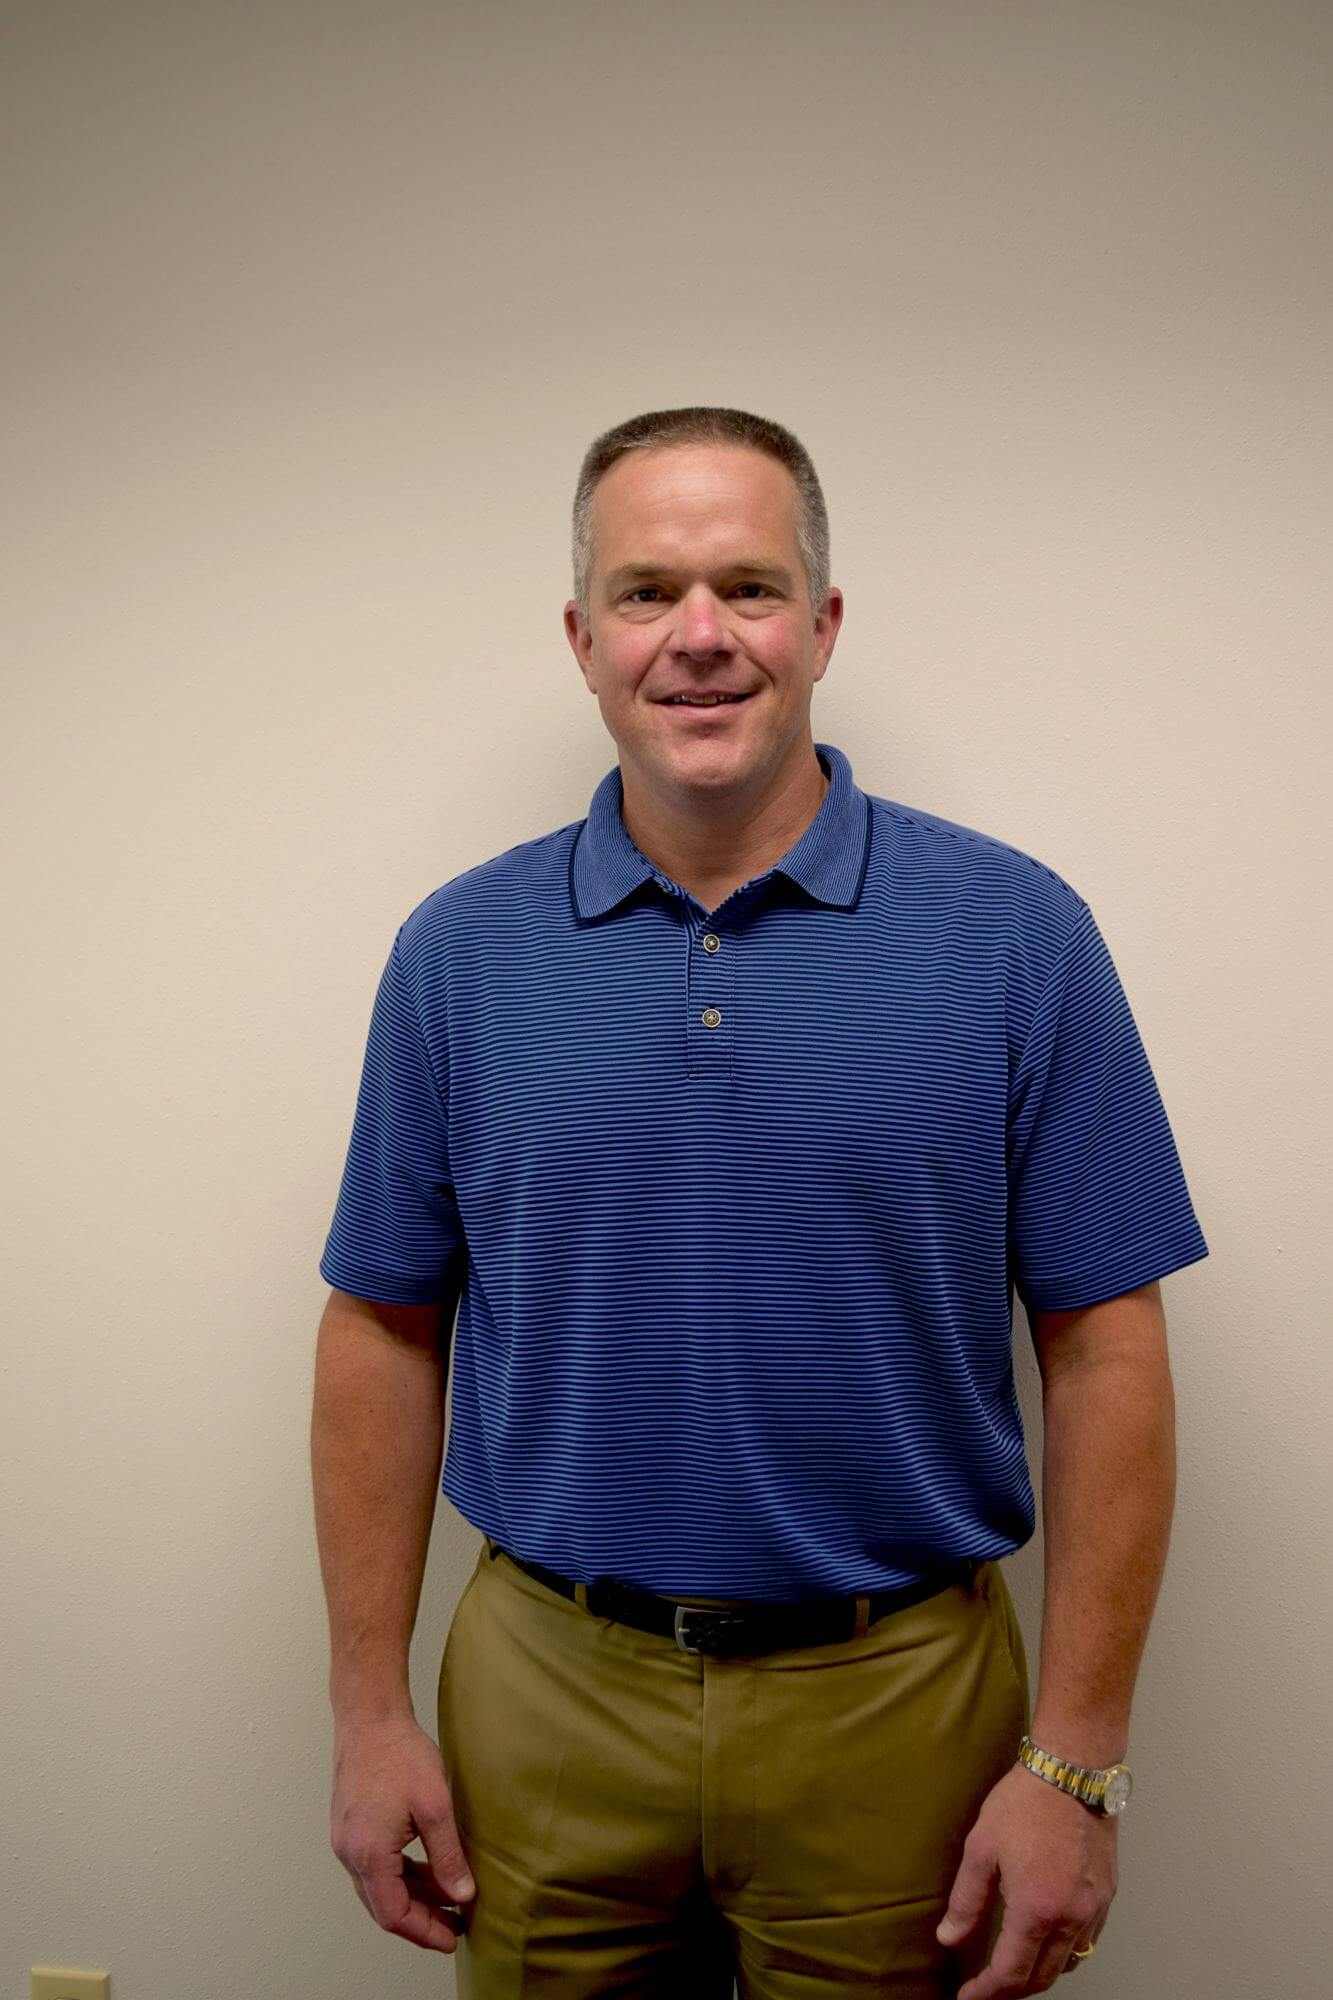 Chris Schlabach, Vice President of Sales